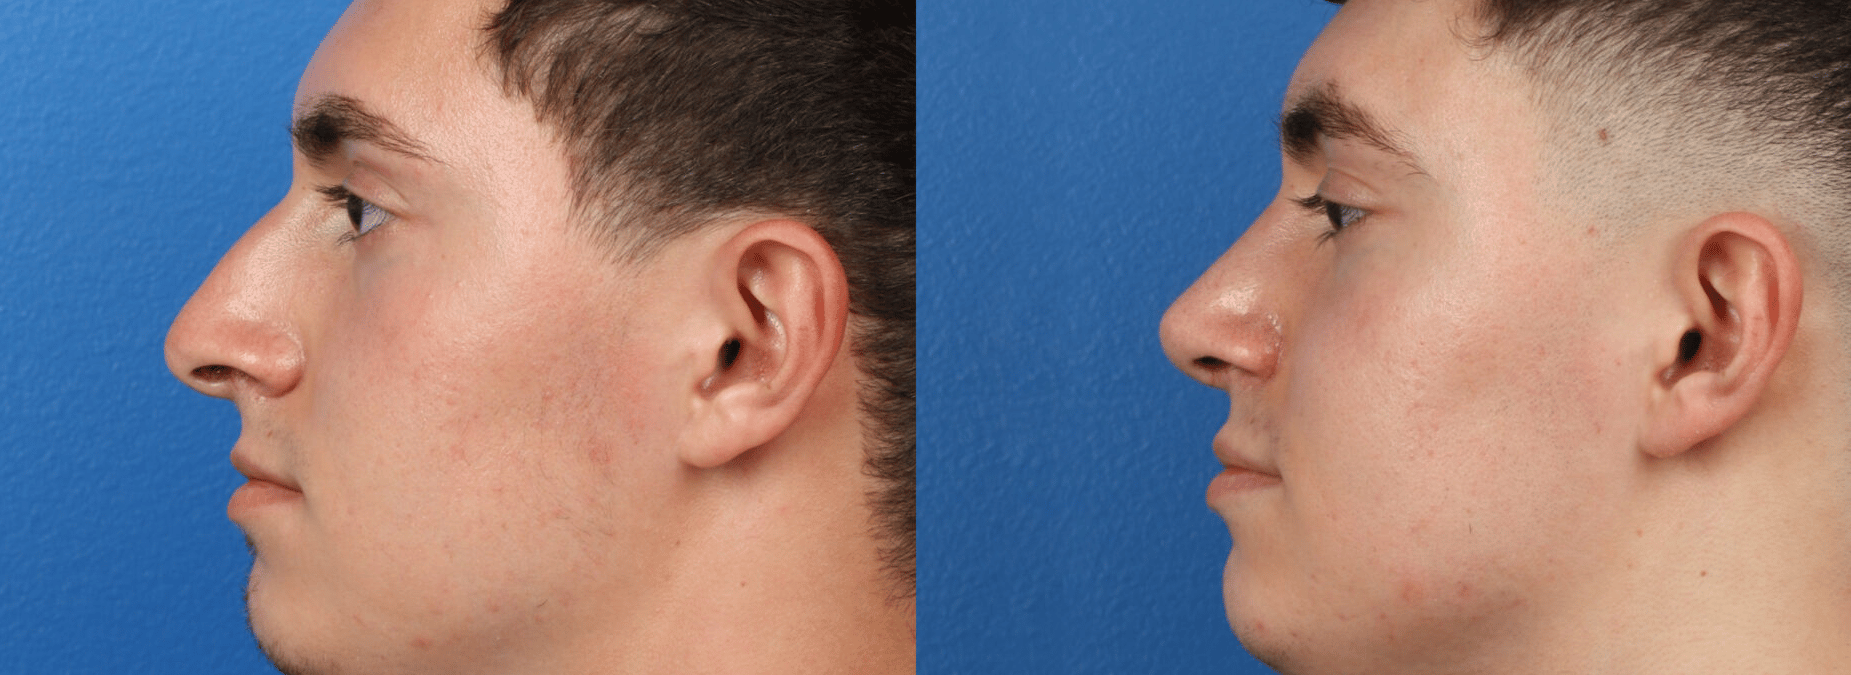 side images of a young male comparing his nose after the rhinoplasty. The nose is more straight after the procedure, New York, NY